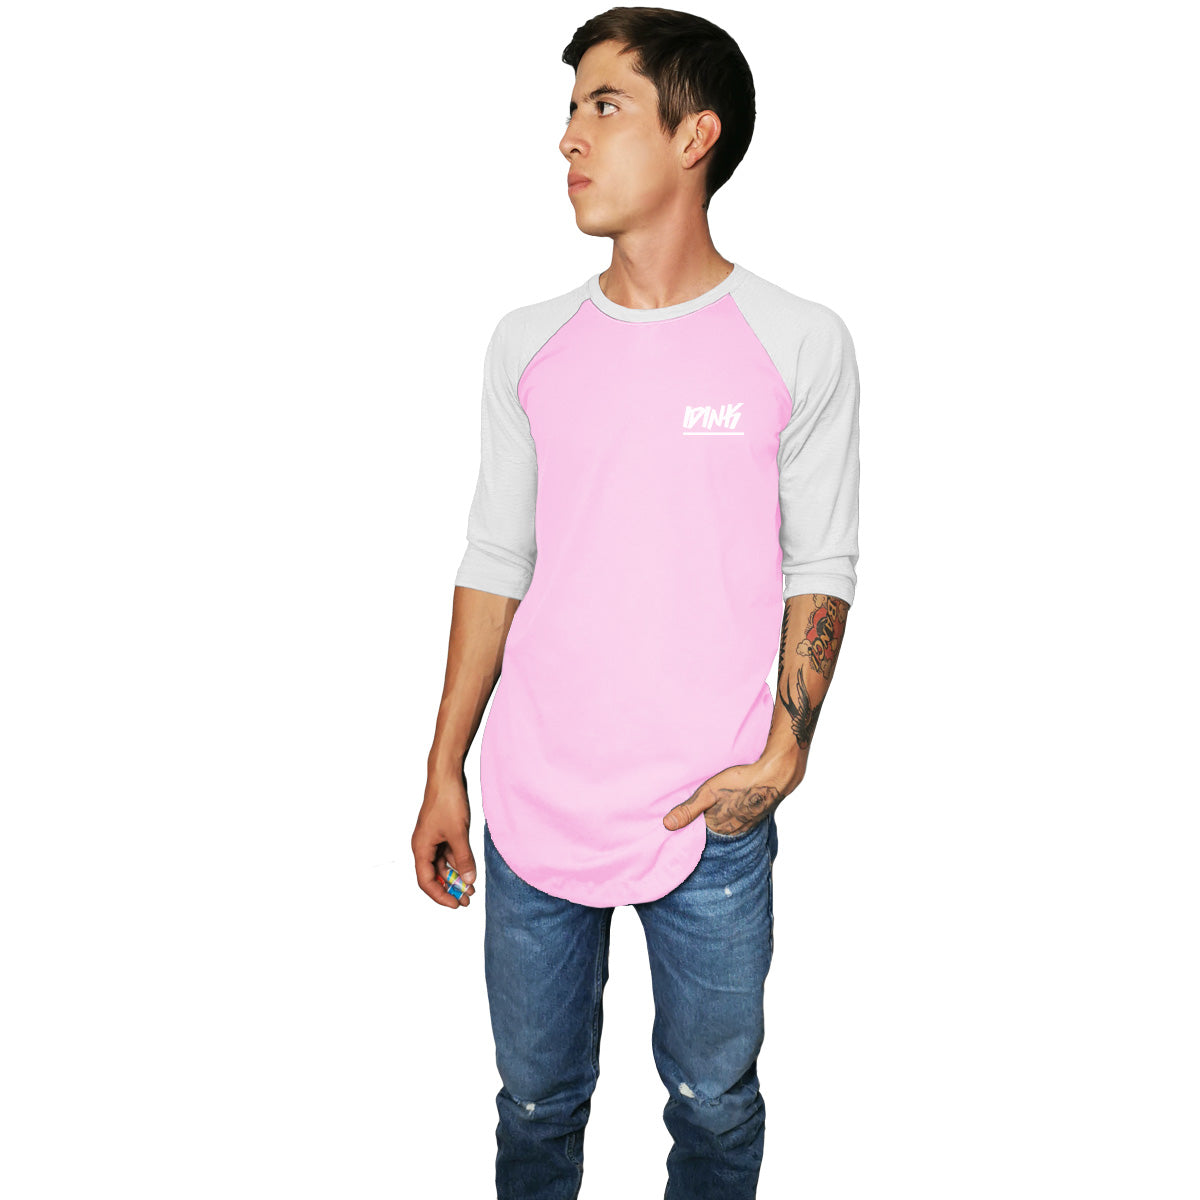 Playera Raglan Long Fit IDINK Rosa